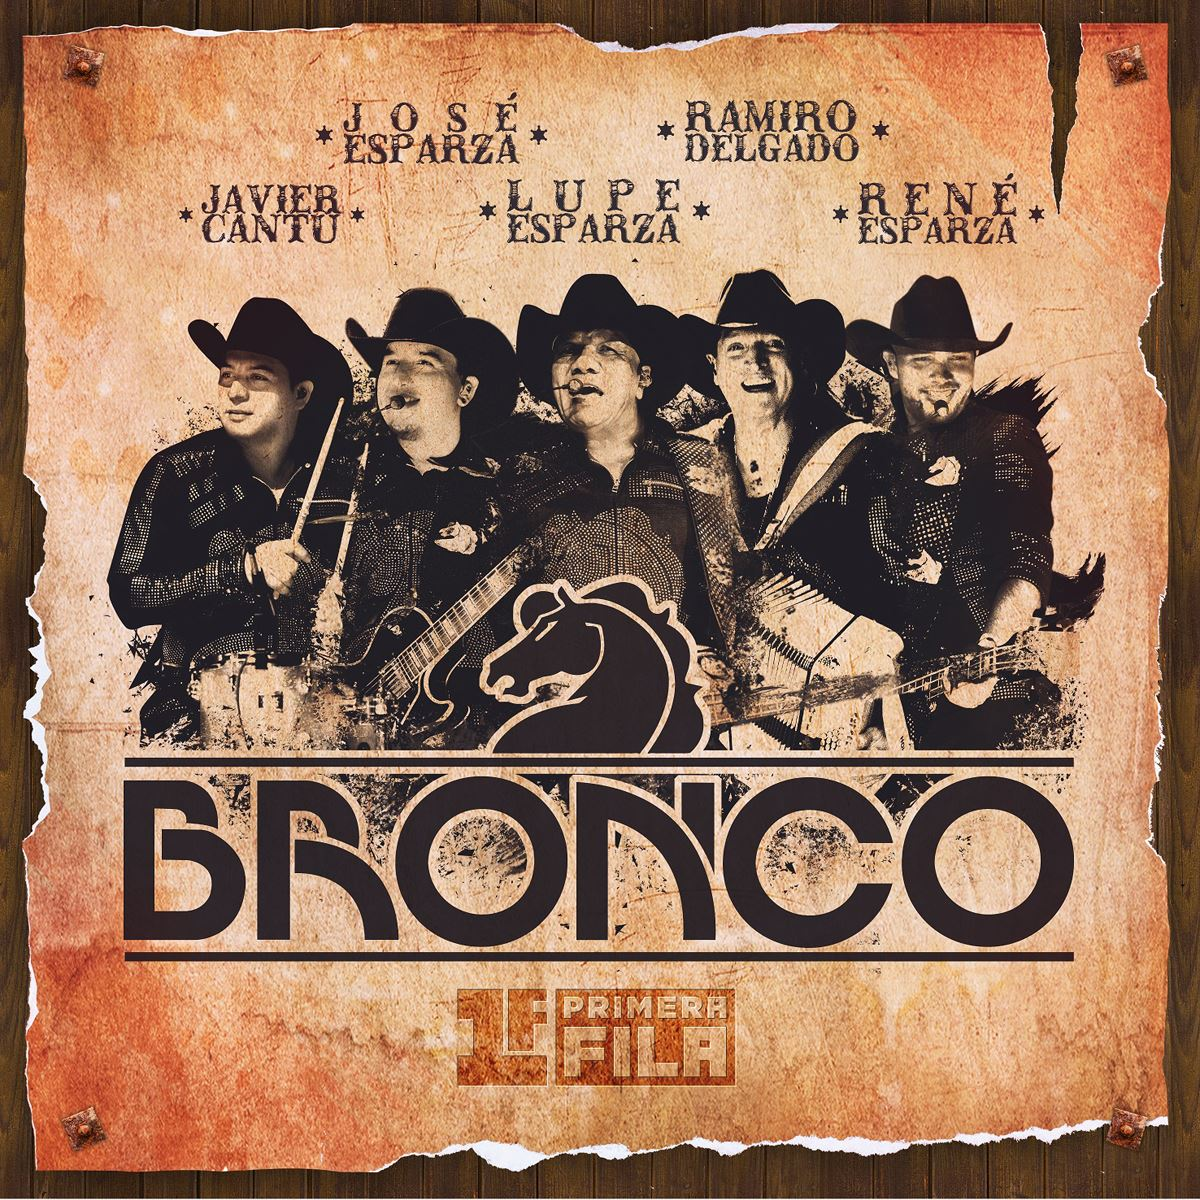 Cd/ dvd bronco- primera fila  - Sanborns